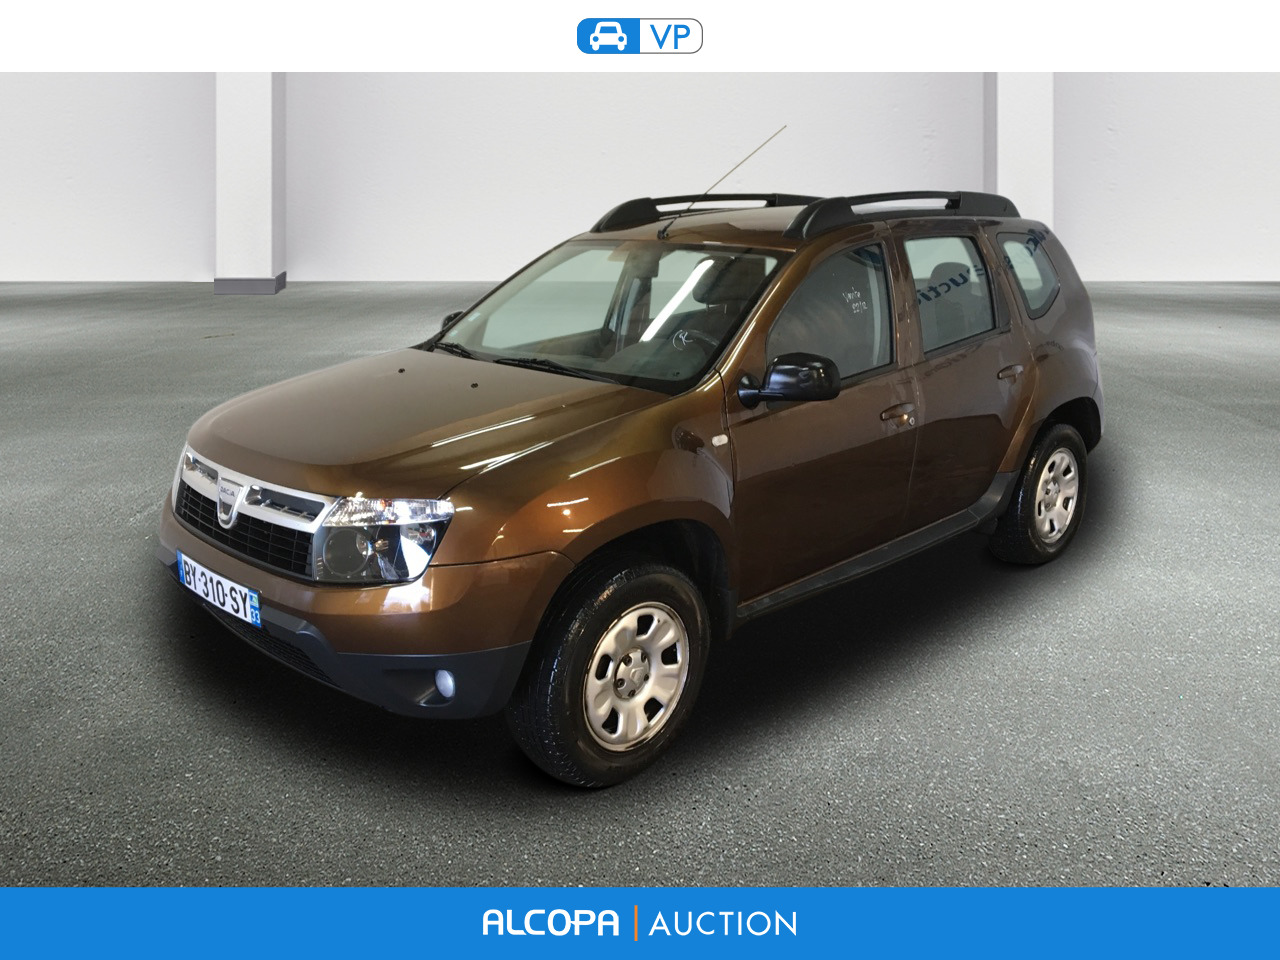 dacia duster duster 1 5 dci 110ch fap laureate 4x4 tours alcopa auction. Black Bedroom Furniture Sets. Home Design Ideas